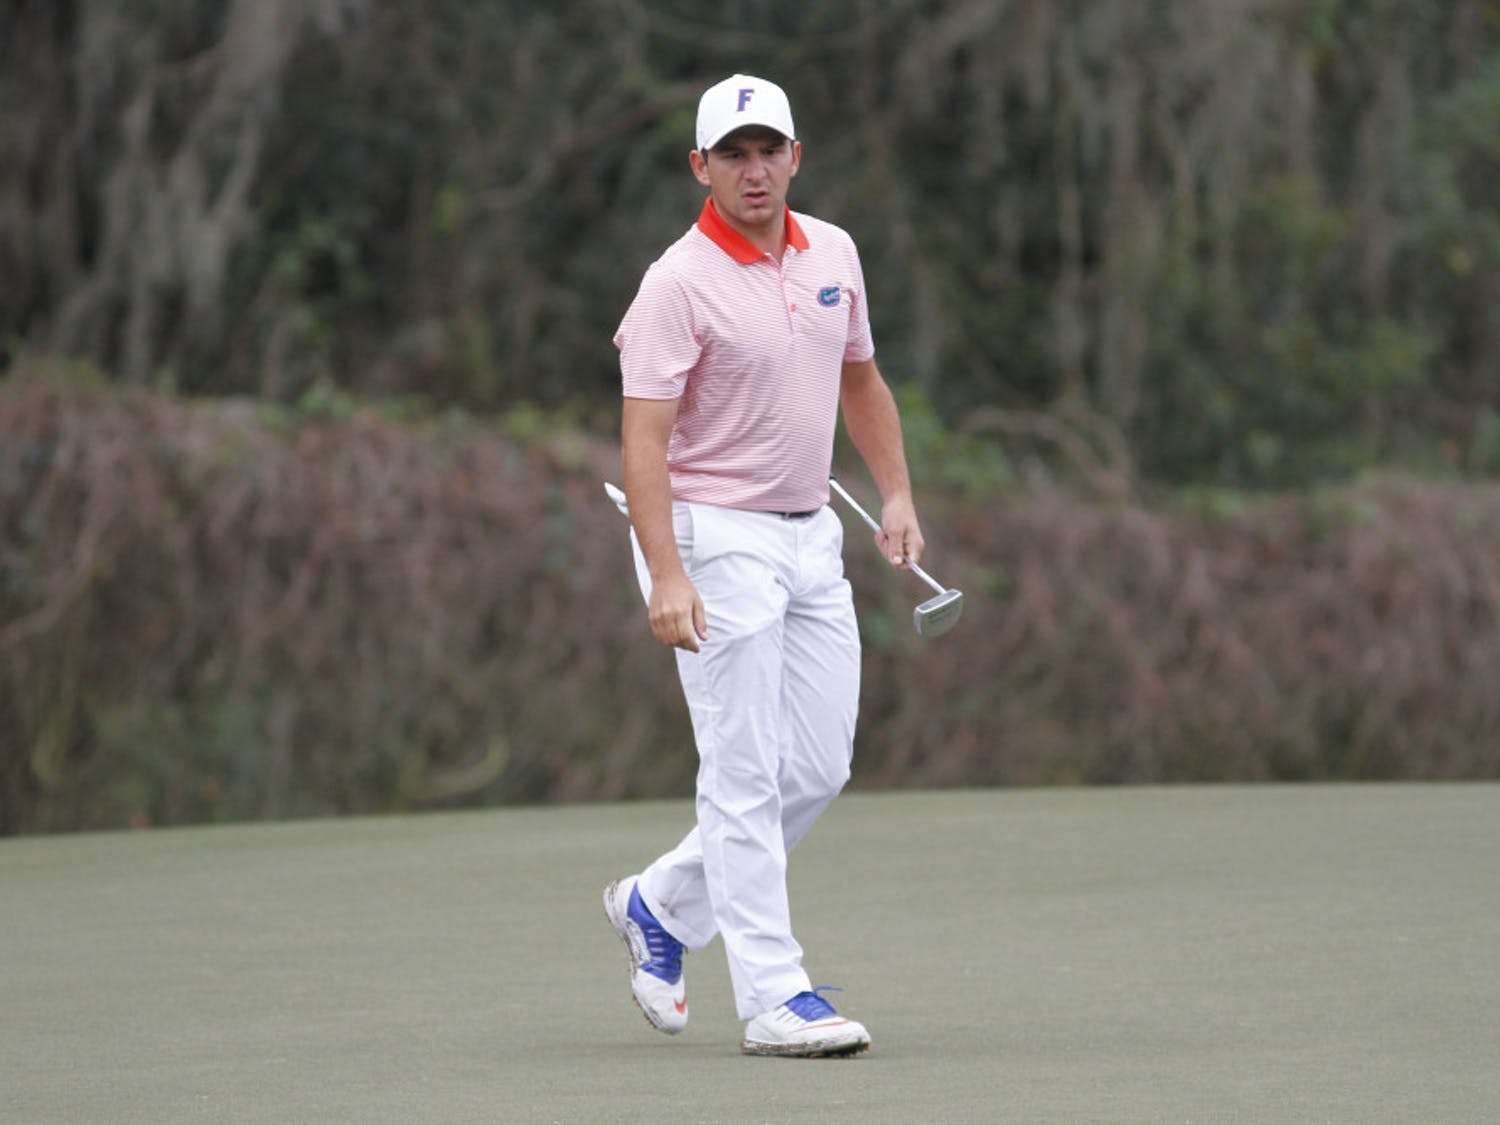 Senior Alejandro Tosti is struggling at the SEC Championship despite being the returning individual champion. He shot 6-over-par on the first day of competition.